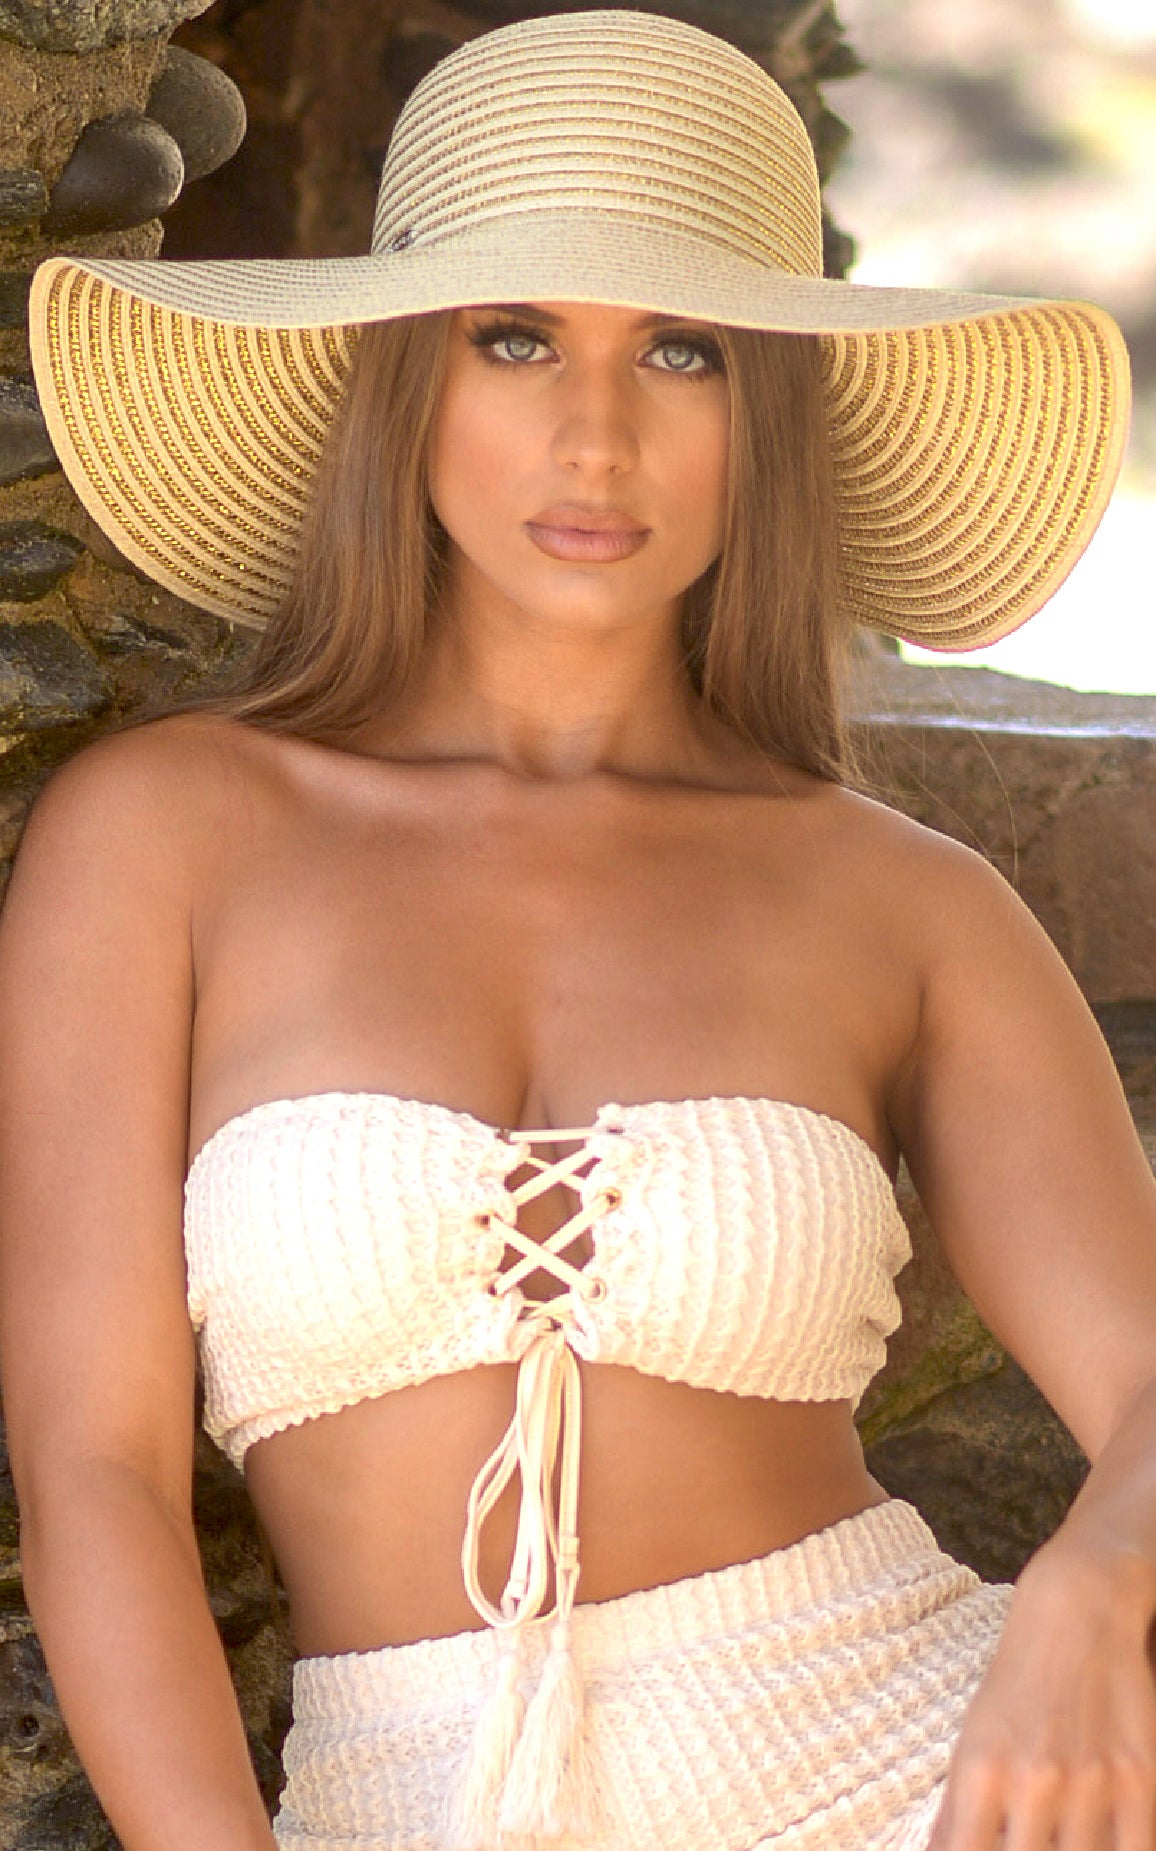 Hat: Beige Floppy Hat with Gold Stripes - Chynna Dolls Swimwear